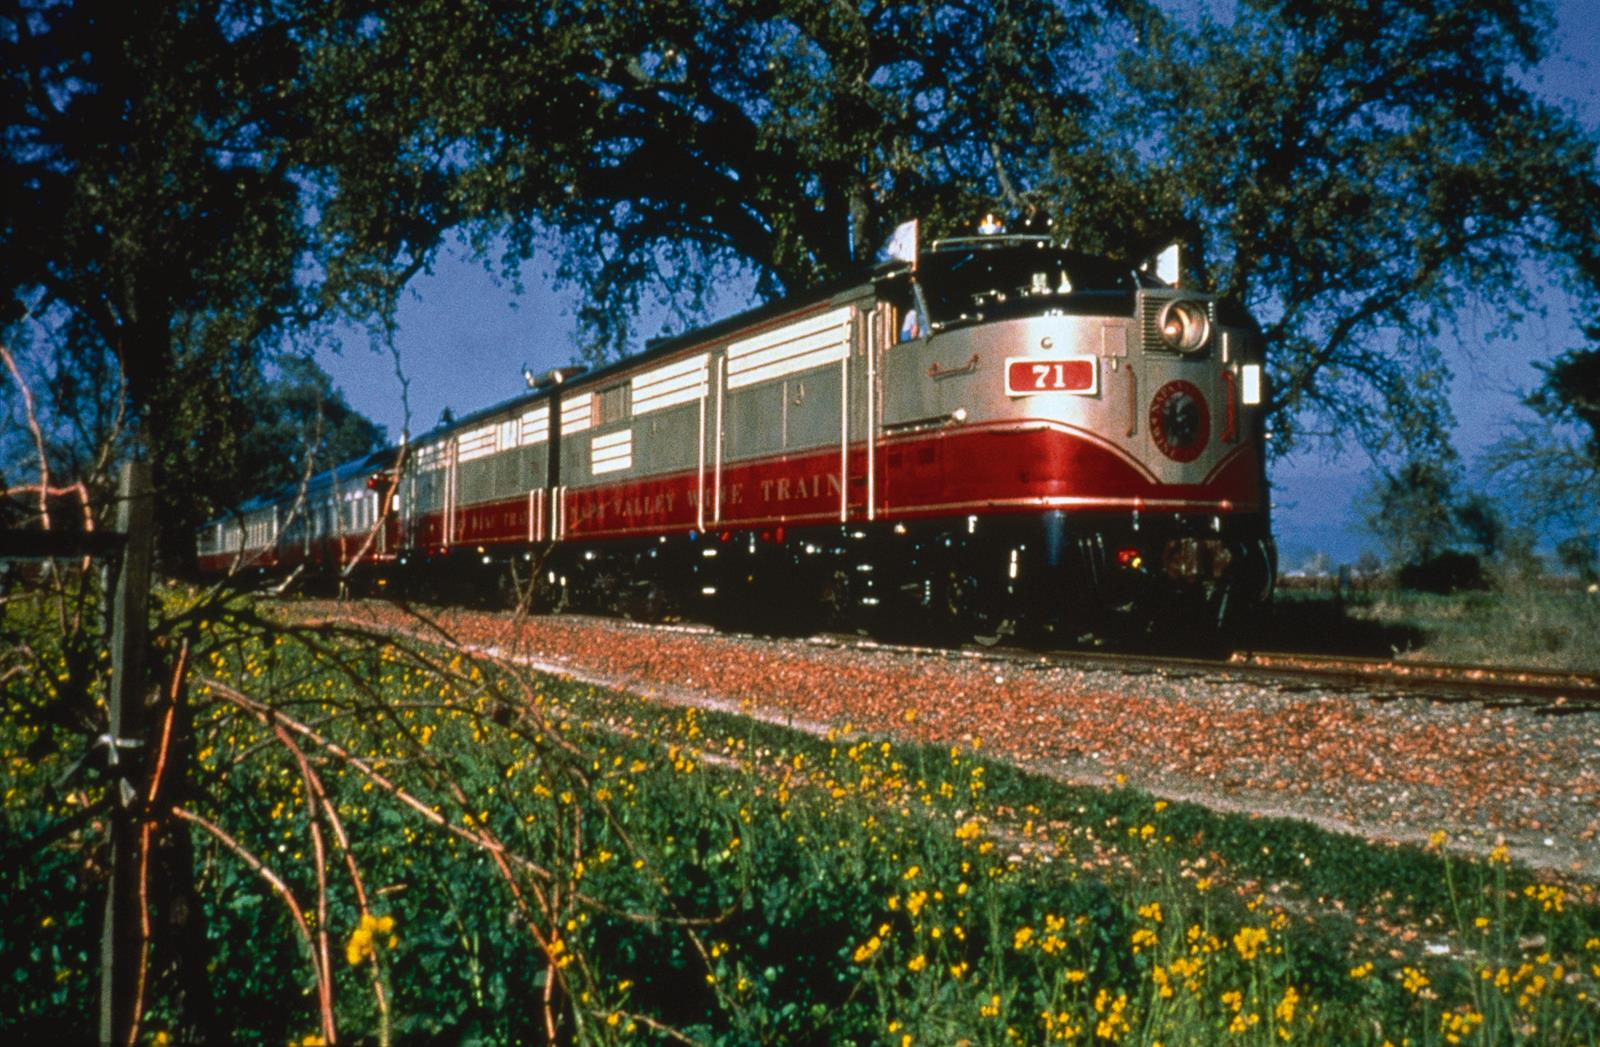 San francisco redwoods trains u s tours for Best time to visit napa valley wine country